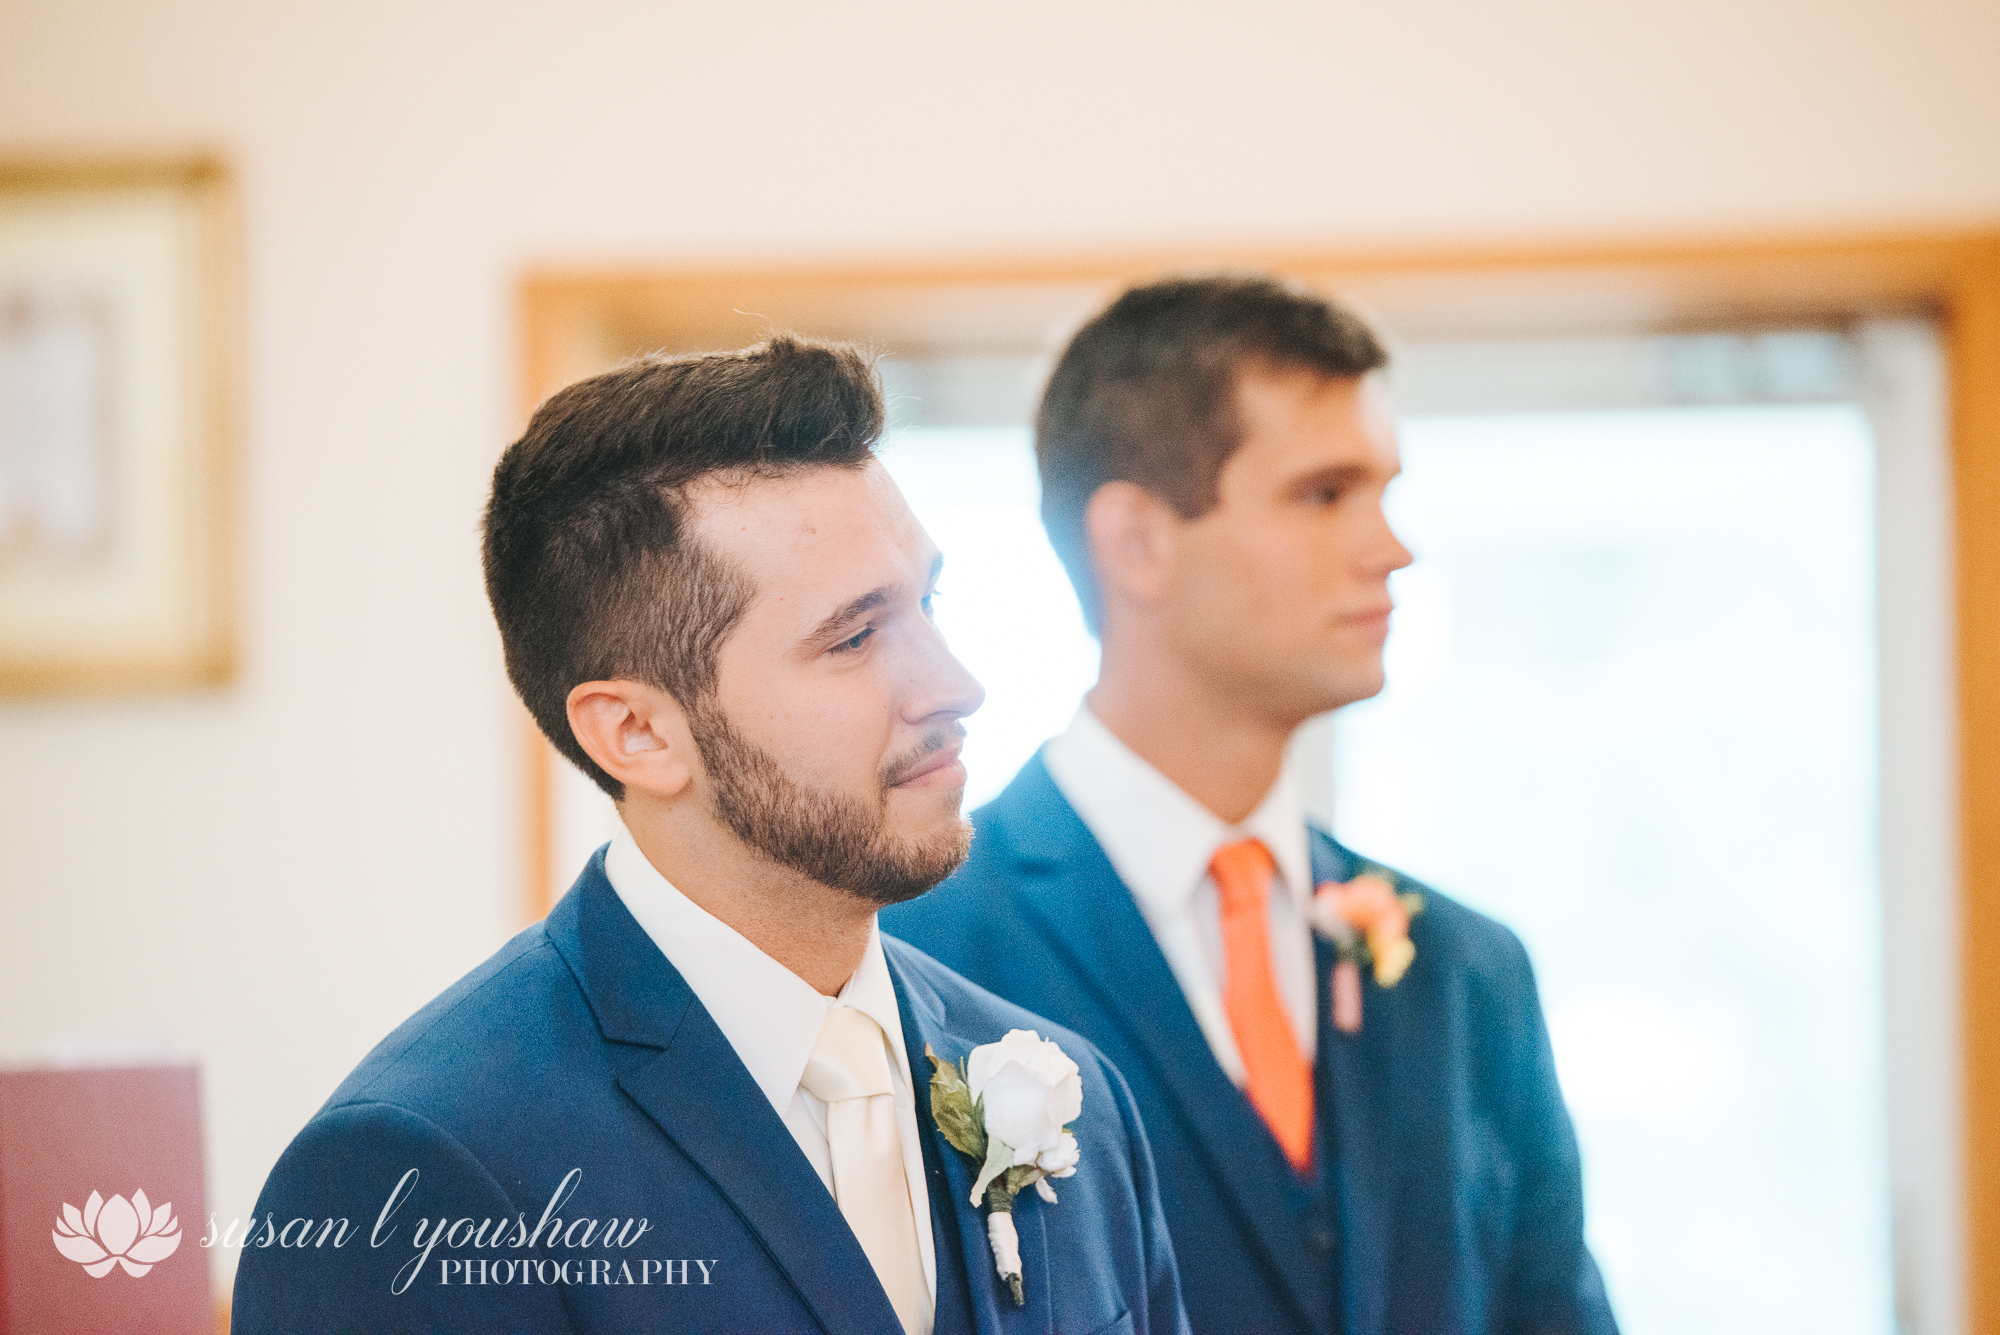 BLOG Kylie and corey Bennet 10-13-2018 SLY Photography LLC-41.jpg